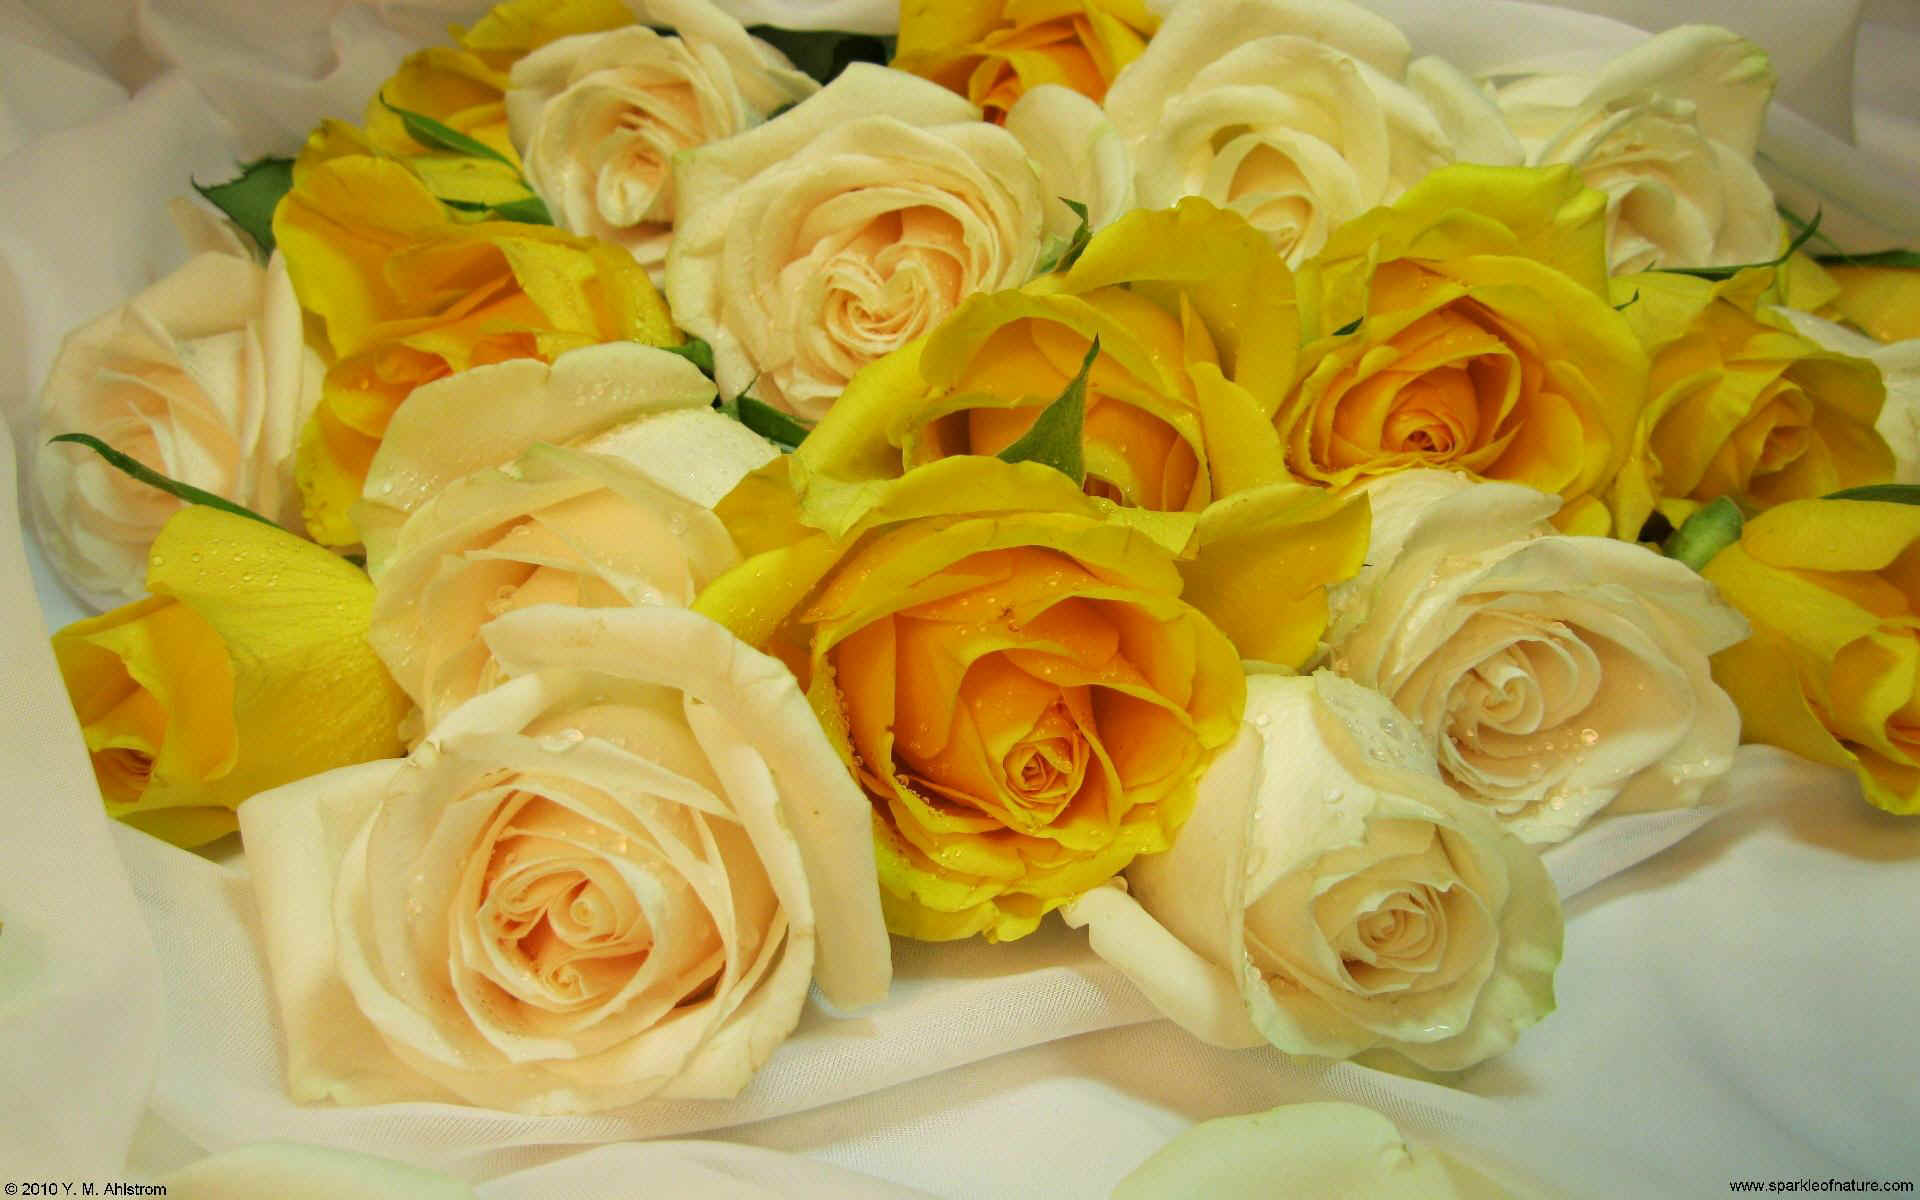 21368 yellow and cream roses 2 w 1920x1200.jpg (244012 bytes)